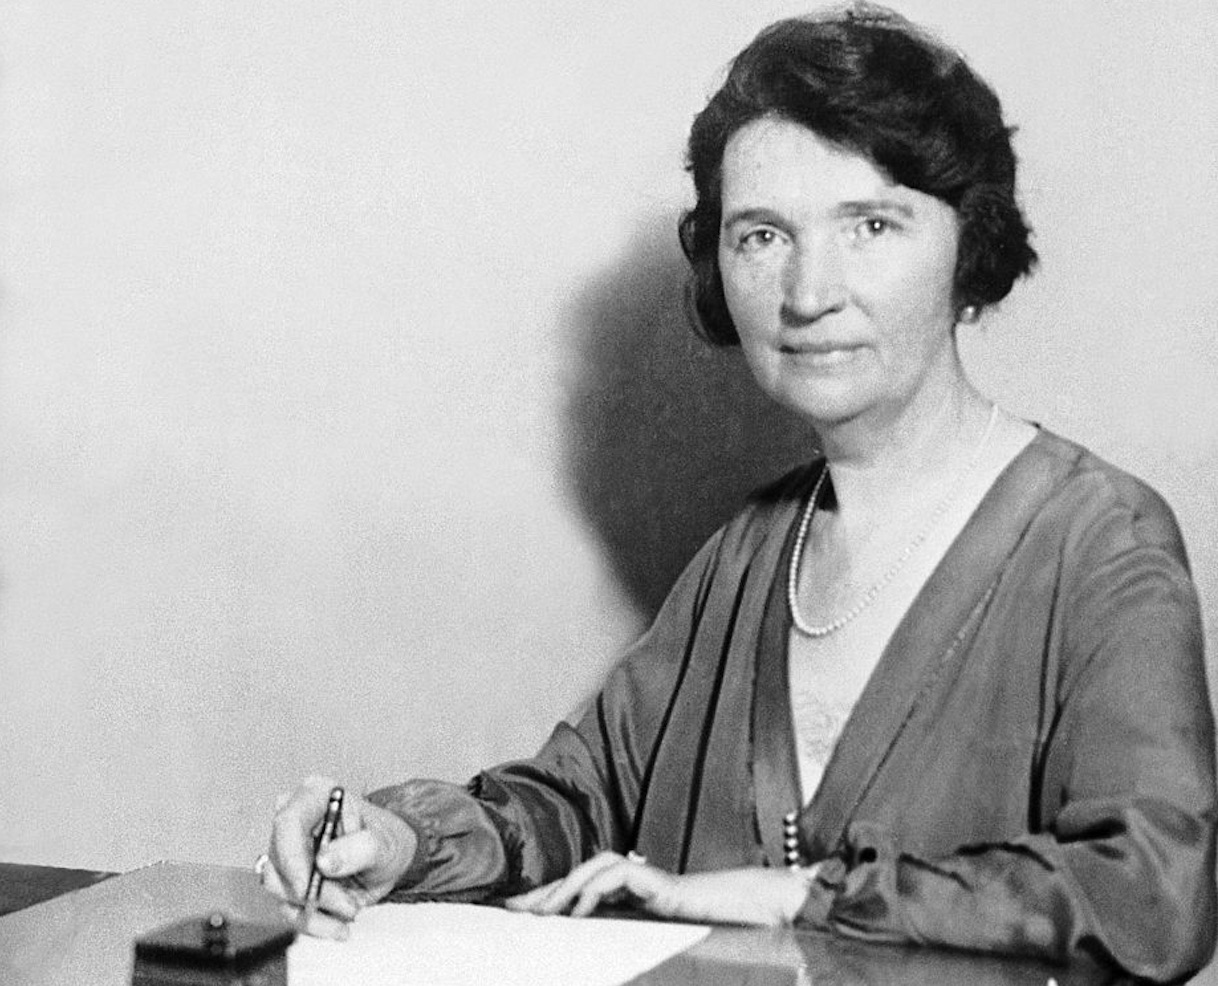 The founder of Planned Parenthood is getting a biopic